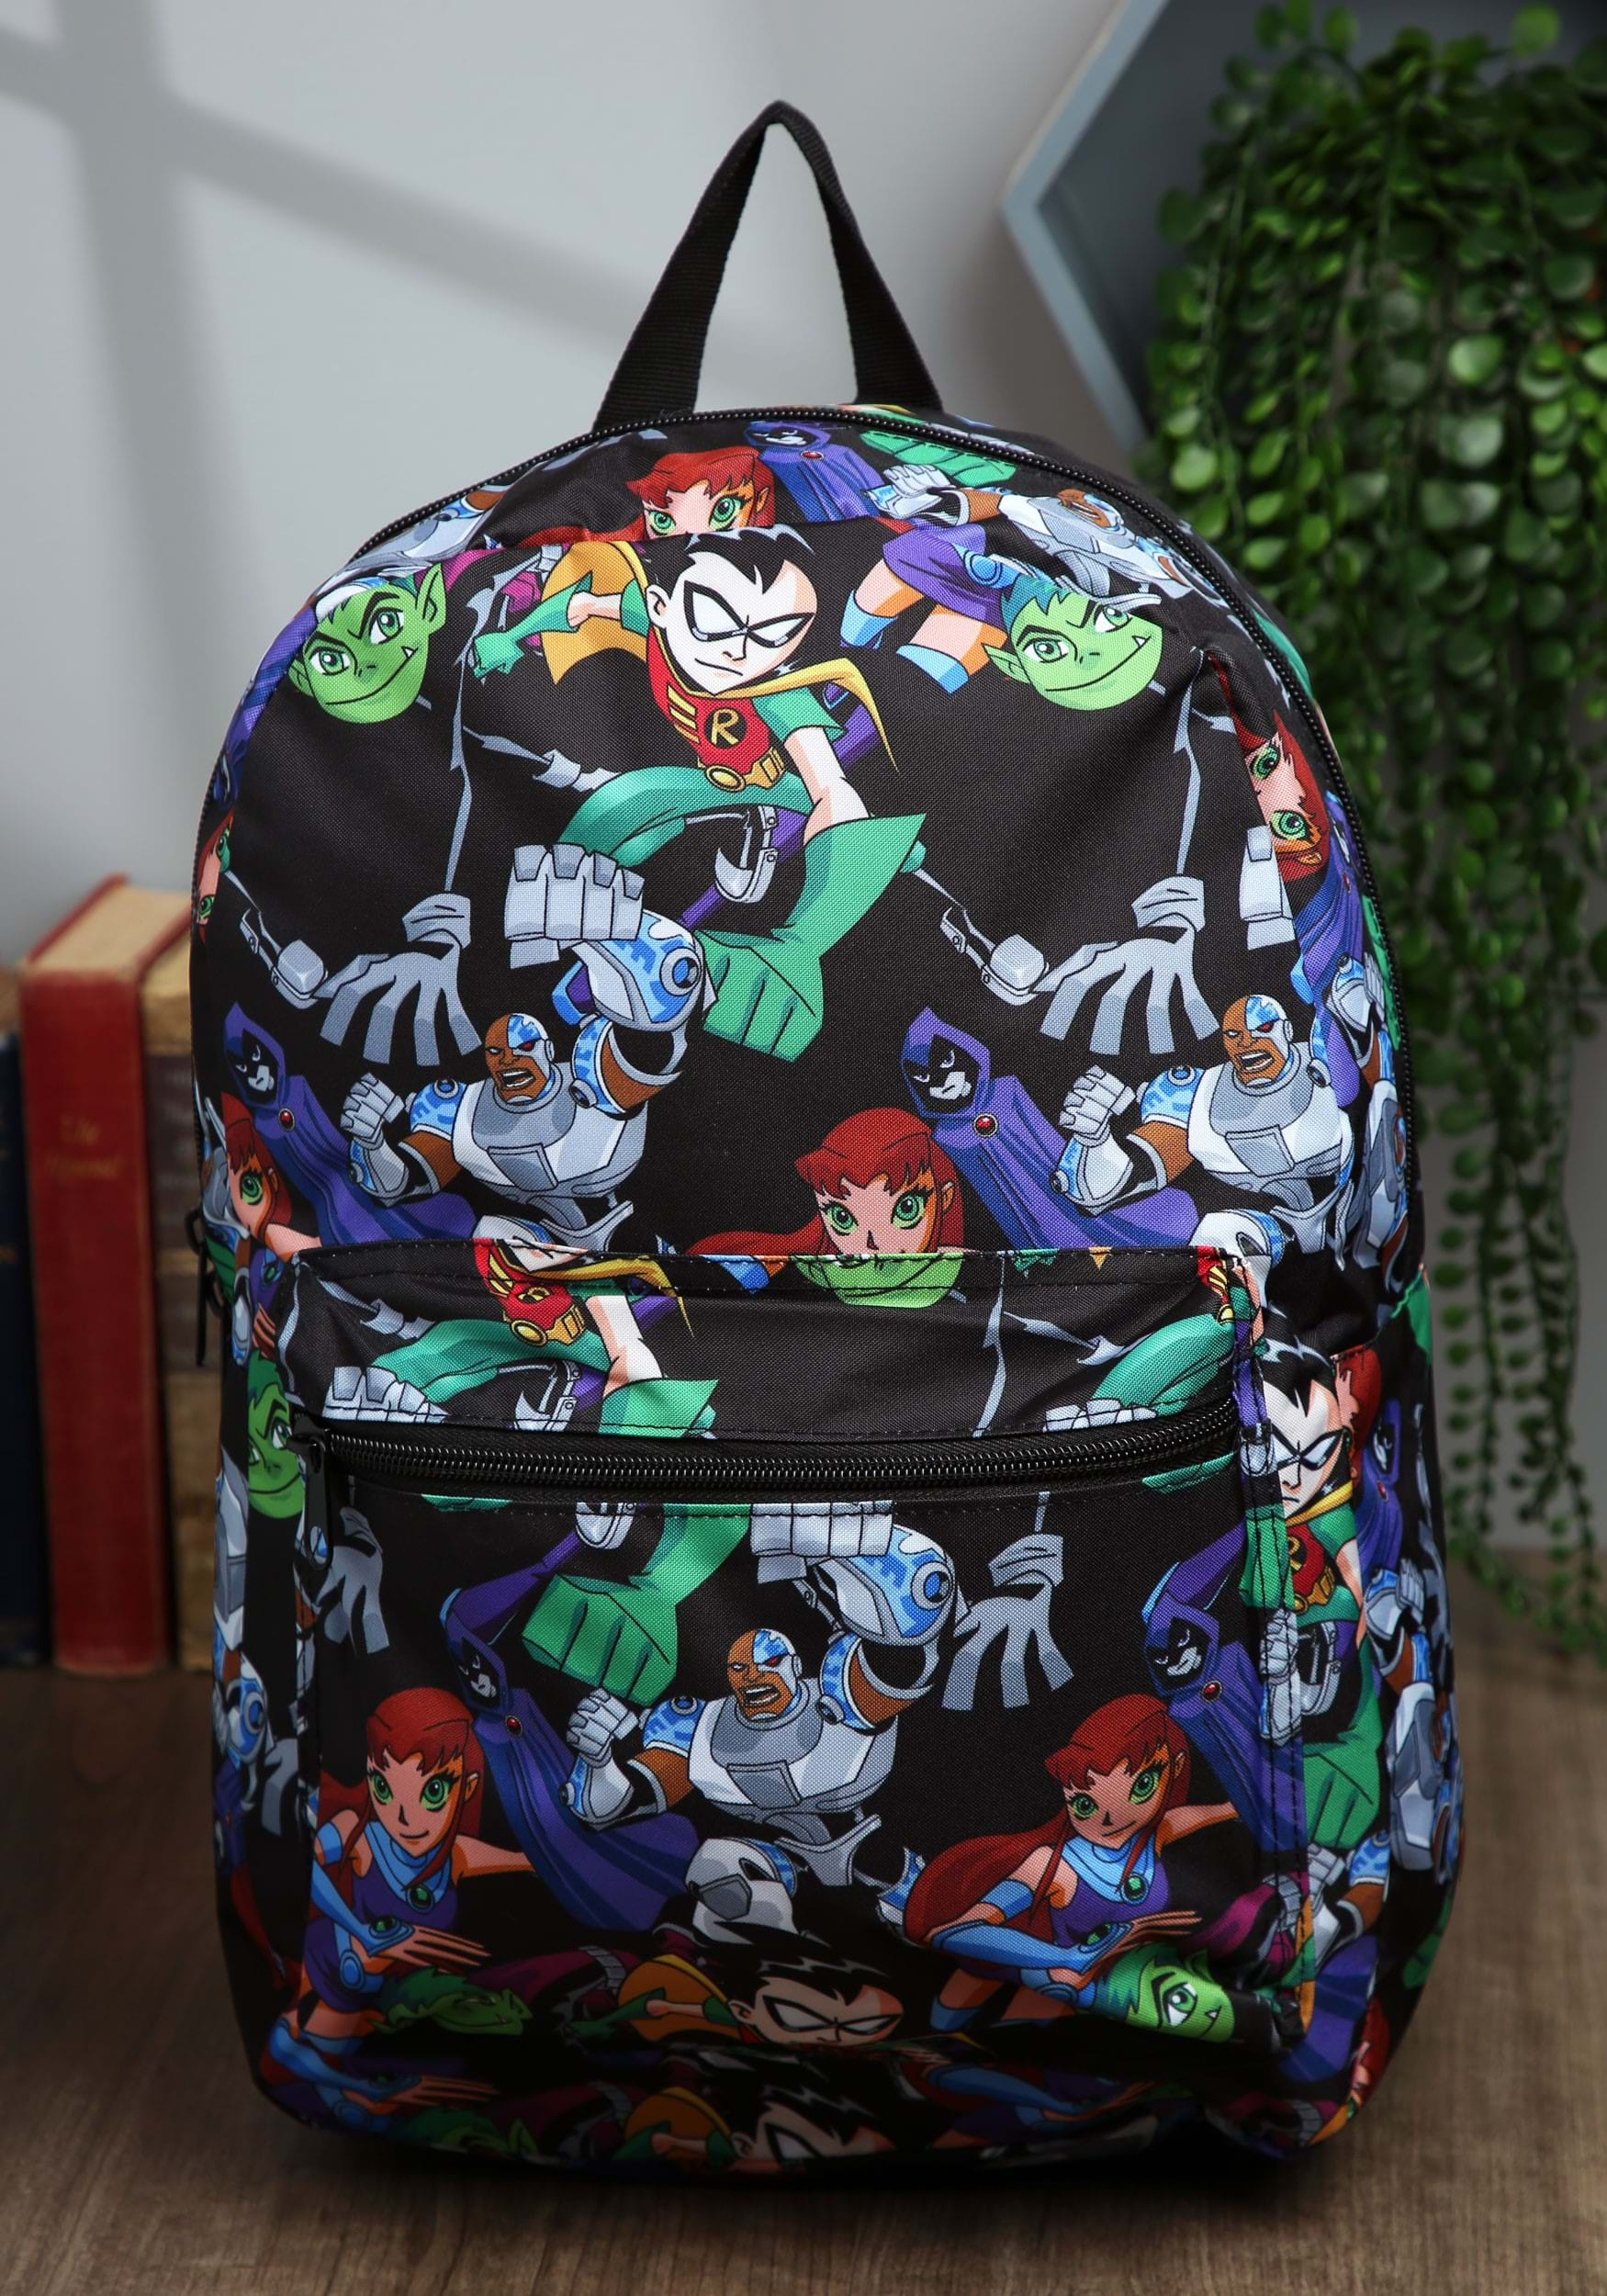 Teen Titans Go All Over Print Back Pack-6546